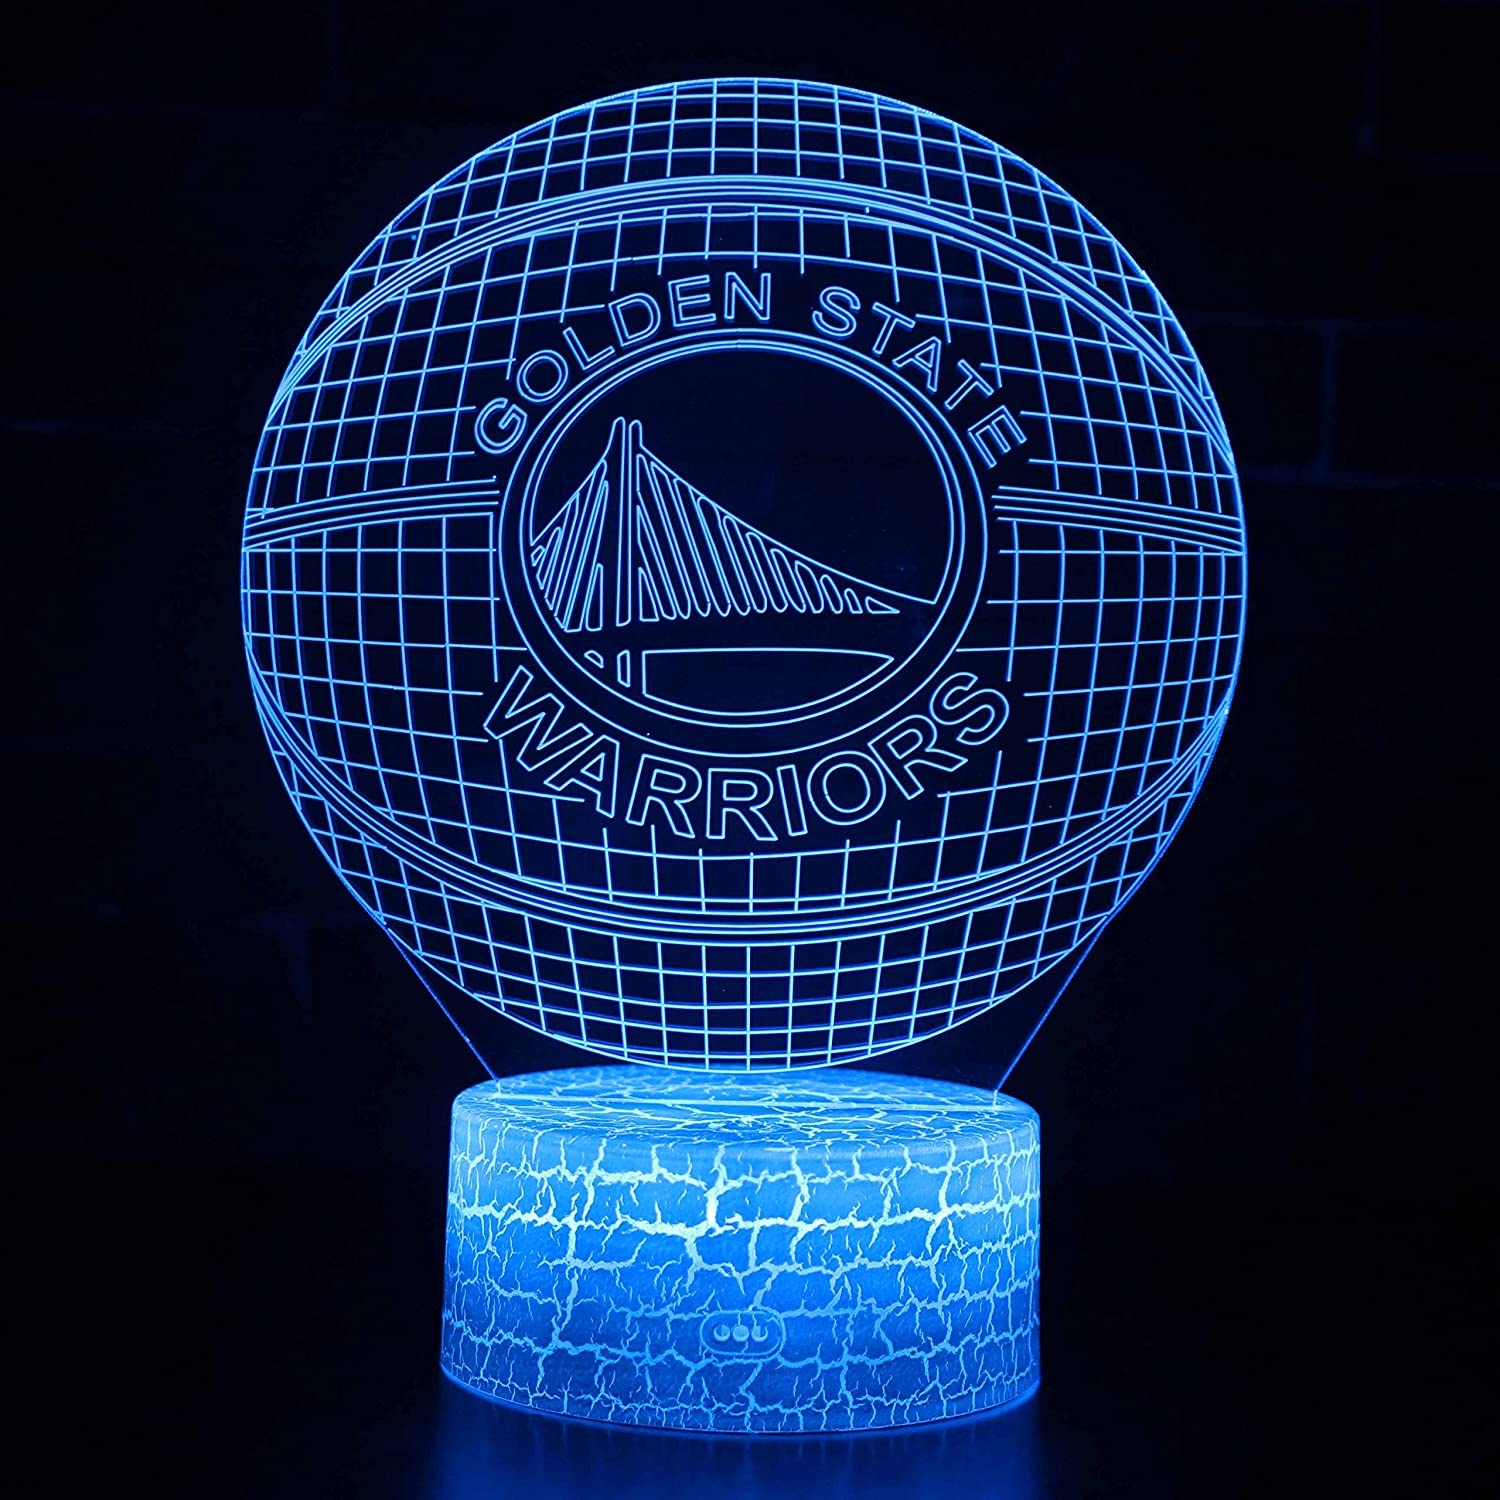 Warriors LED NBA Team 3D Optical Illusion Smart 7 Colors Night Light Table Lamp with USB Power Cable